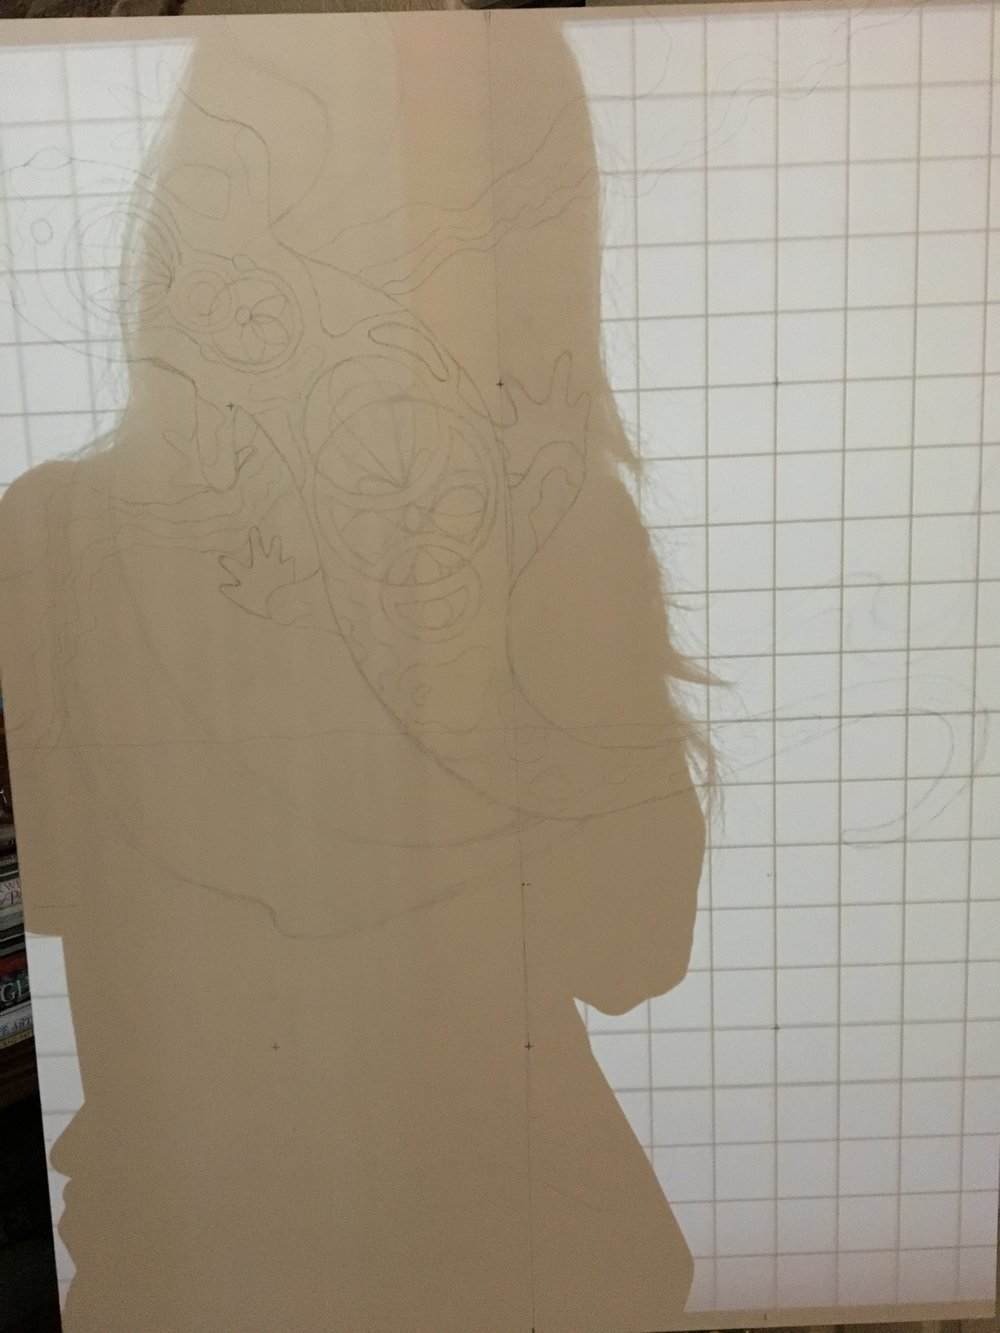 I projected a grid onto the canvas so I could make sure all of my quatrefoil leaves were lined up. It drives some other people crazy when I break out my rulers, compass, and level, but hey what can I say, I'm a nerd. The problem here is that most canvases don't have perfectly square corners. Ergh.